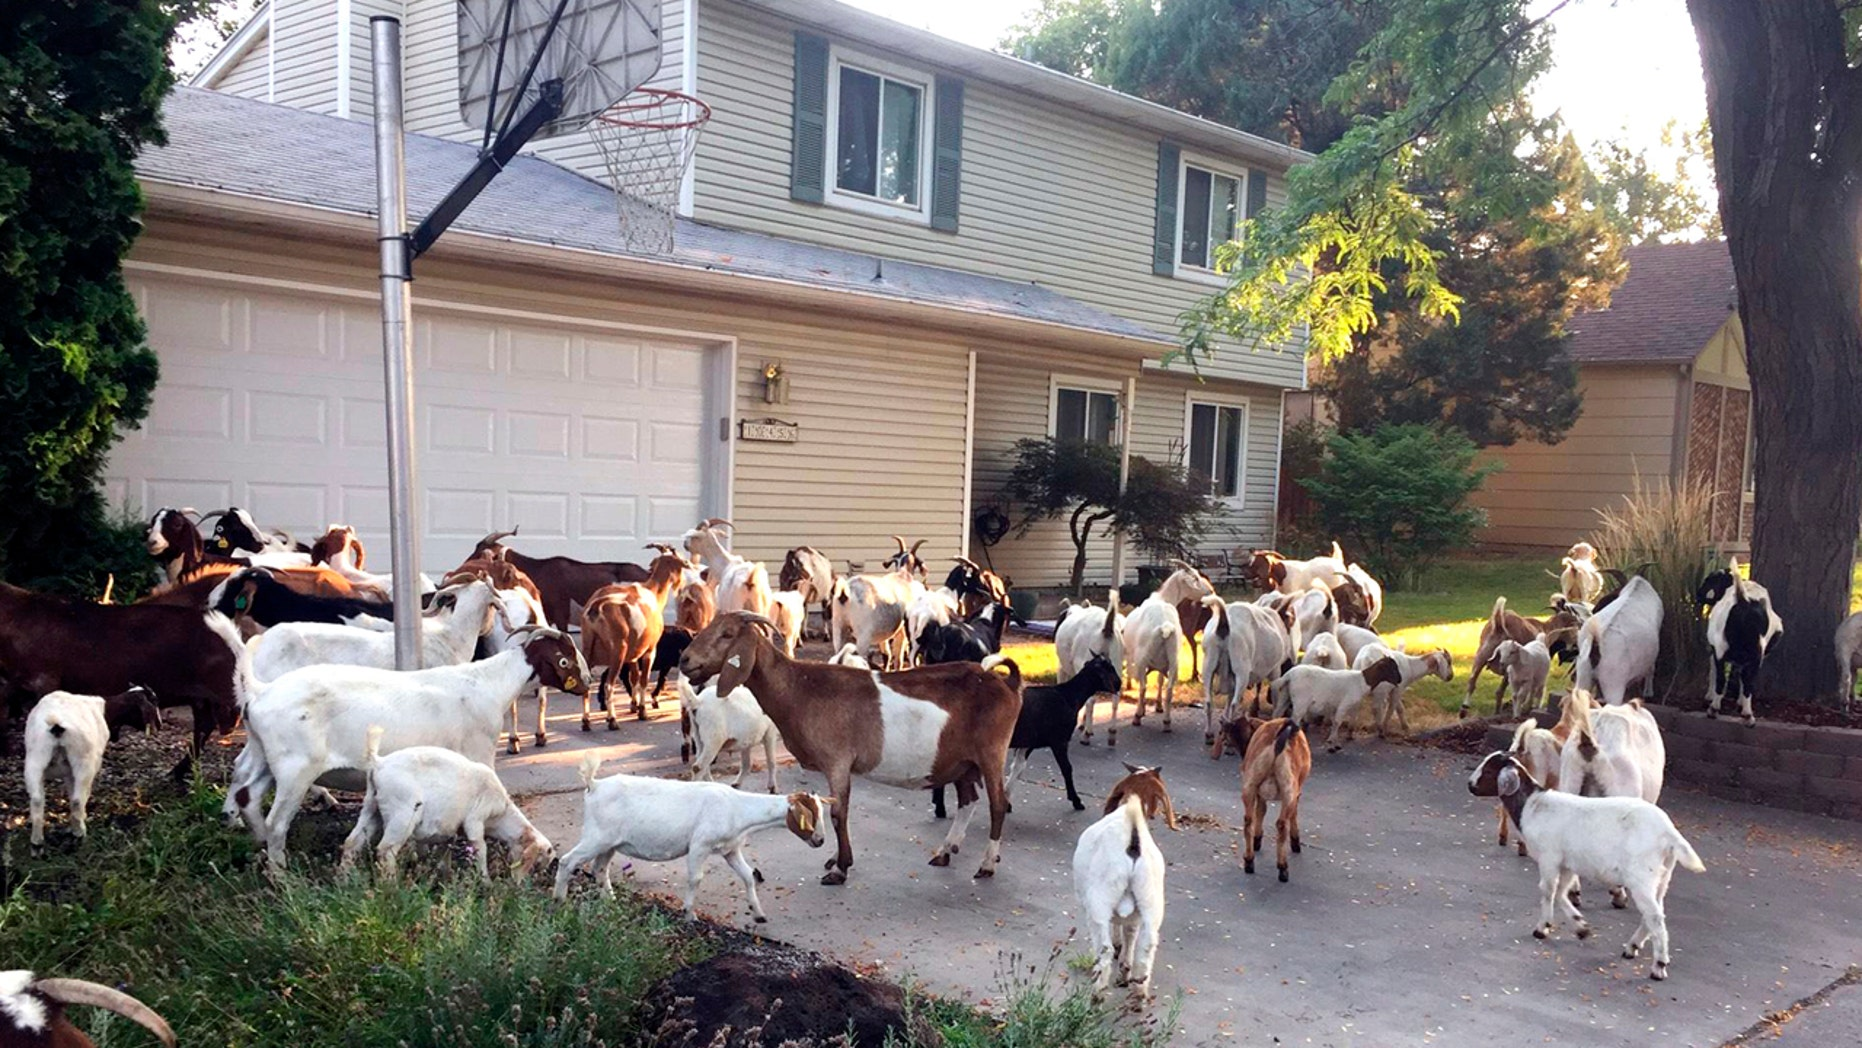 Scores of goats munch on the flora and fauna in a residential area of Boise, Idaho, Aug 3, 2018.